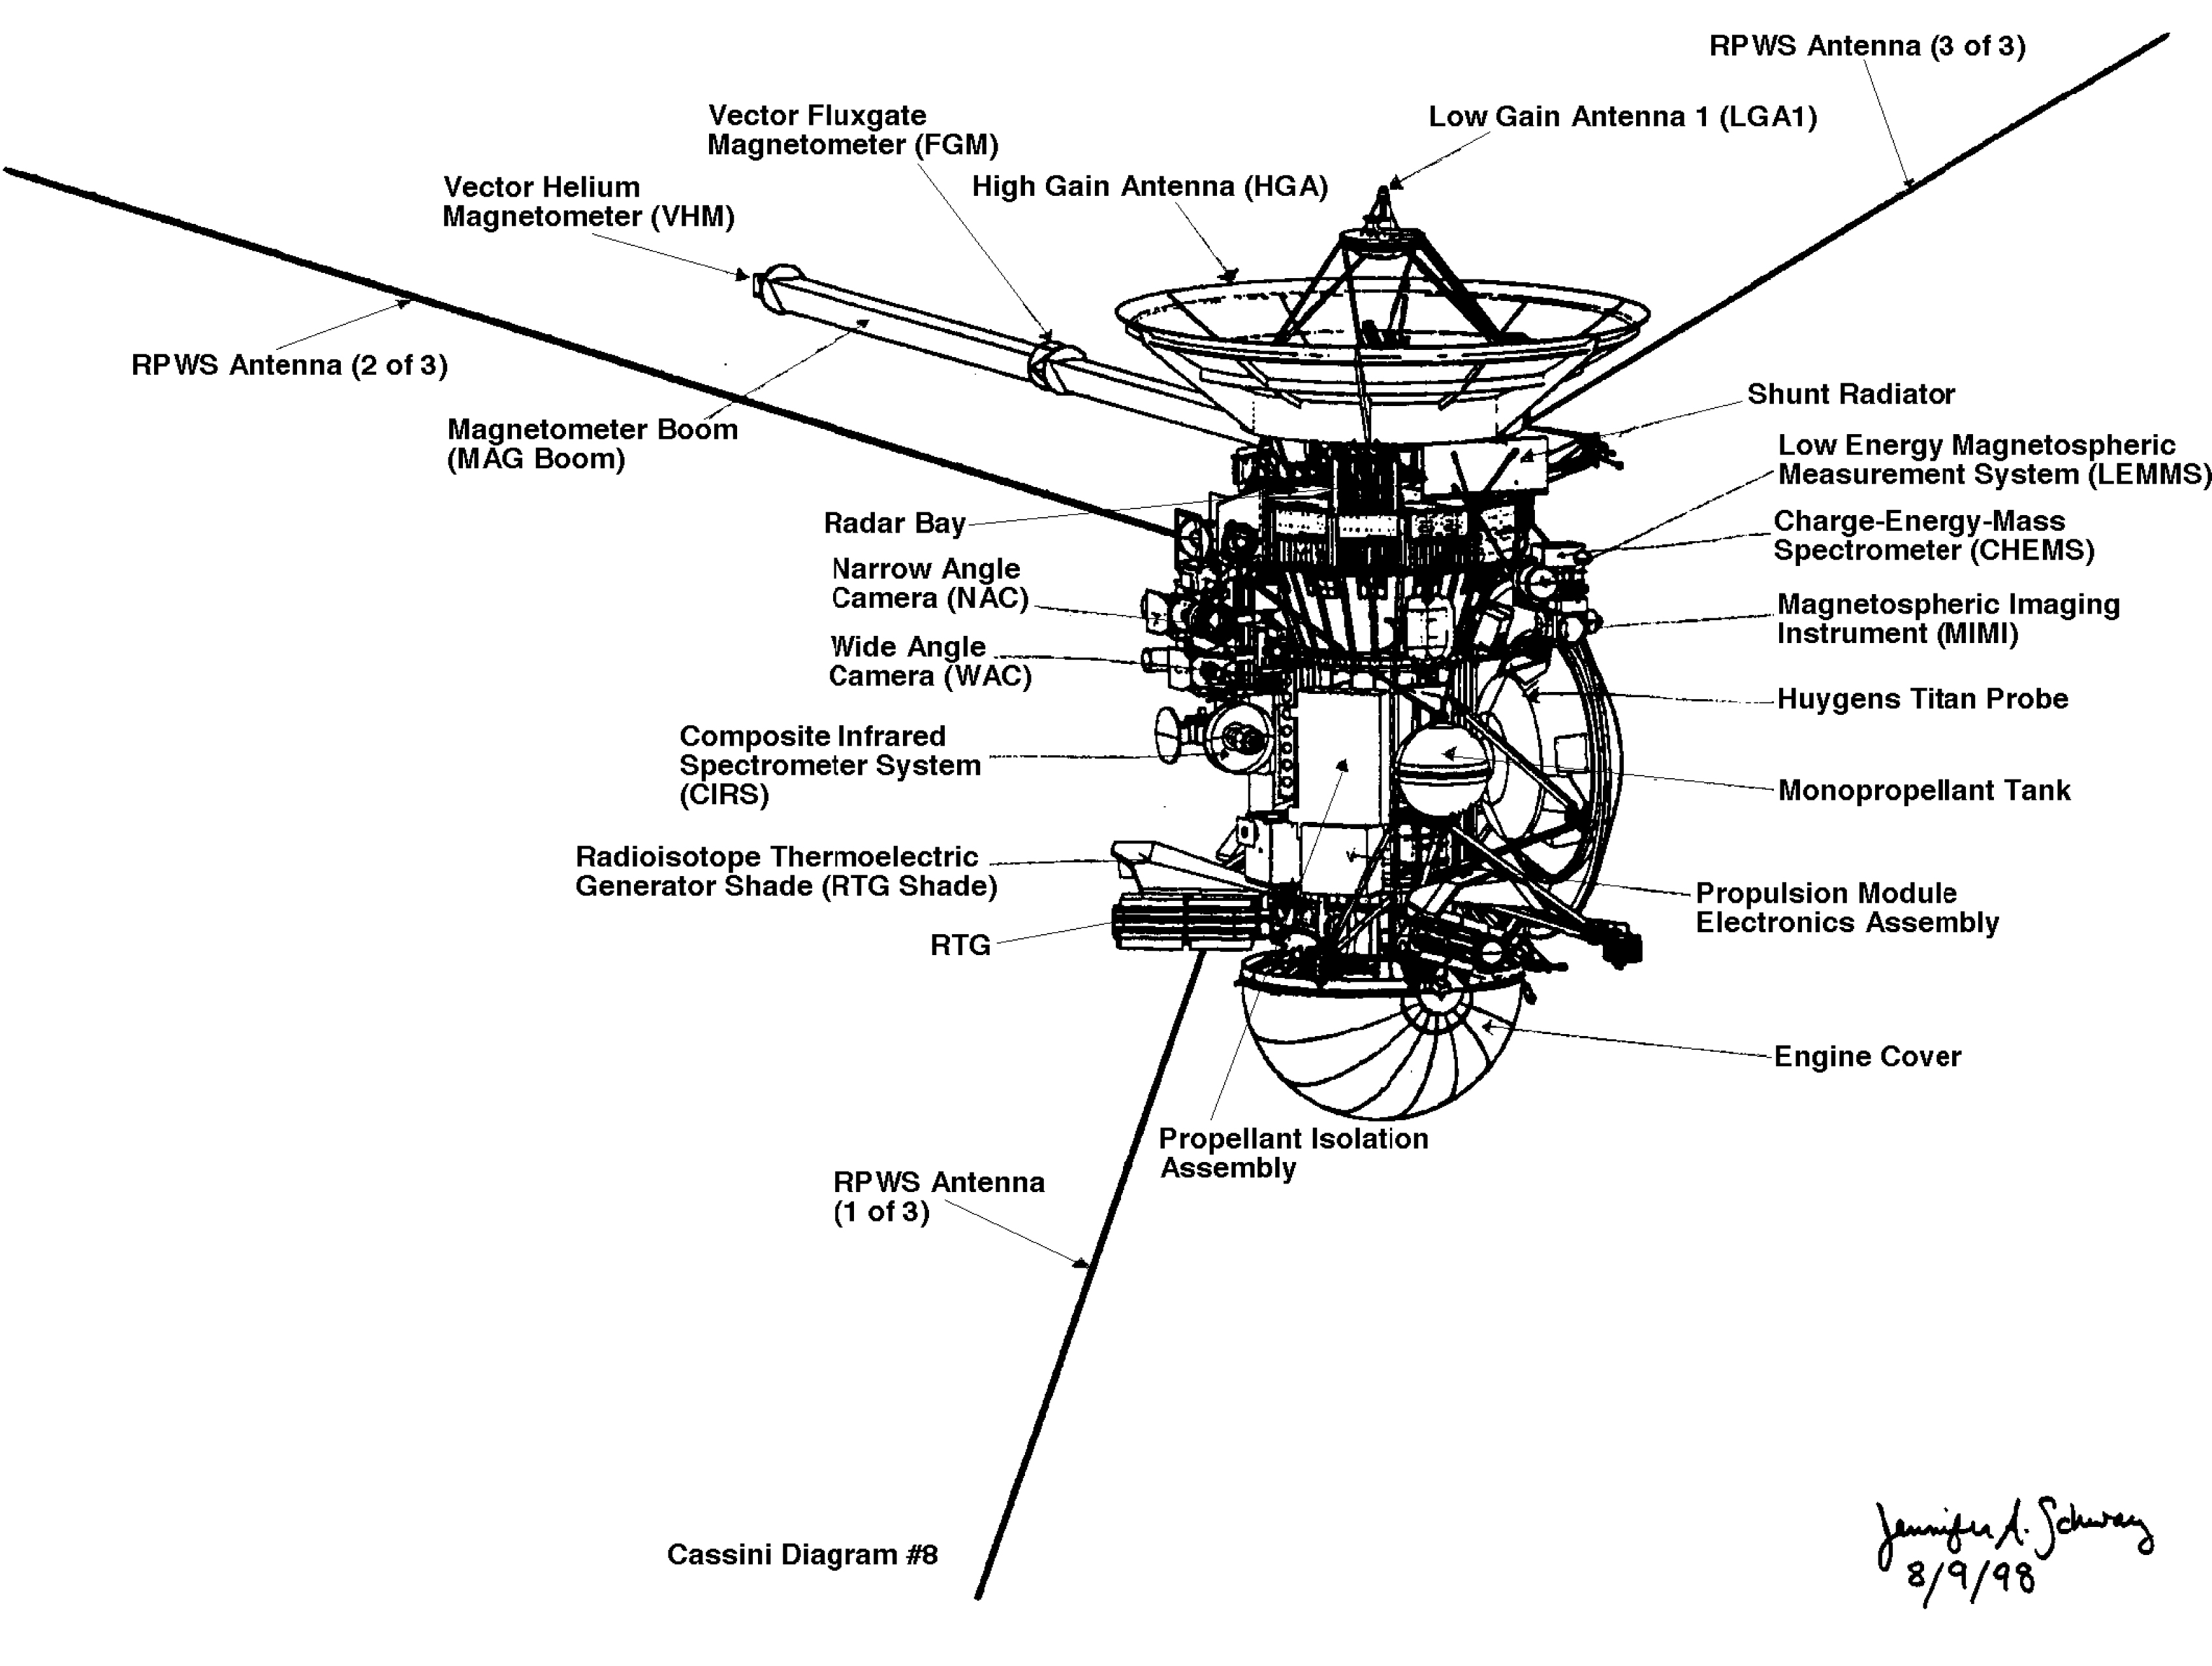 Cassini Diagram No 8